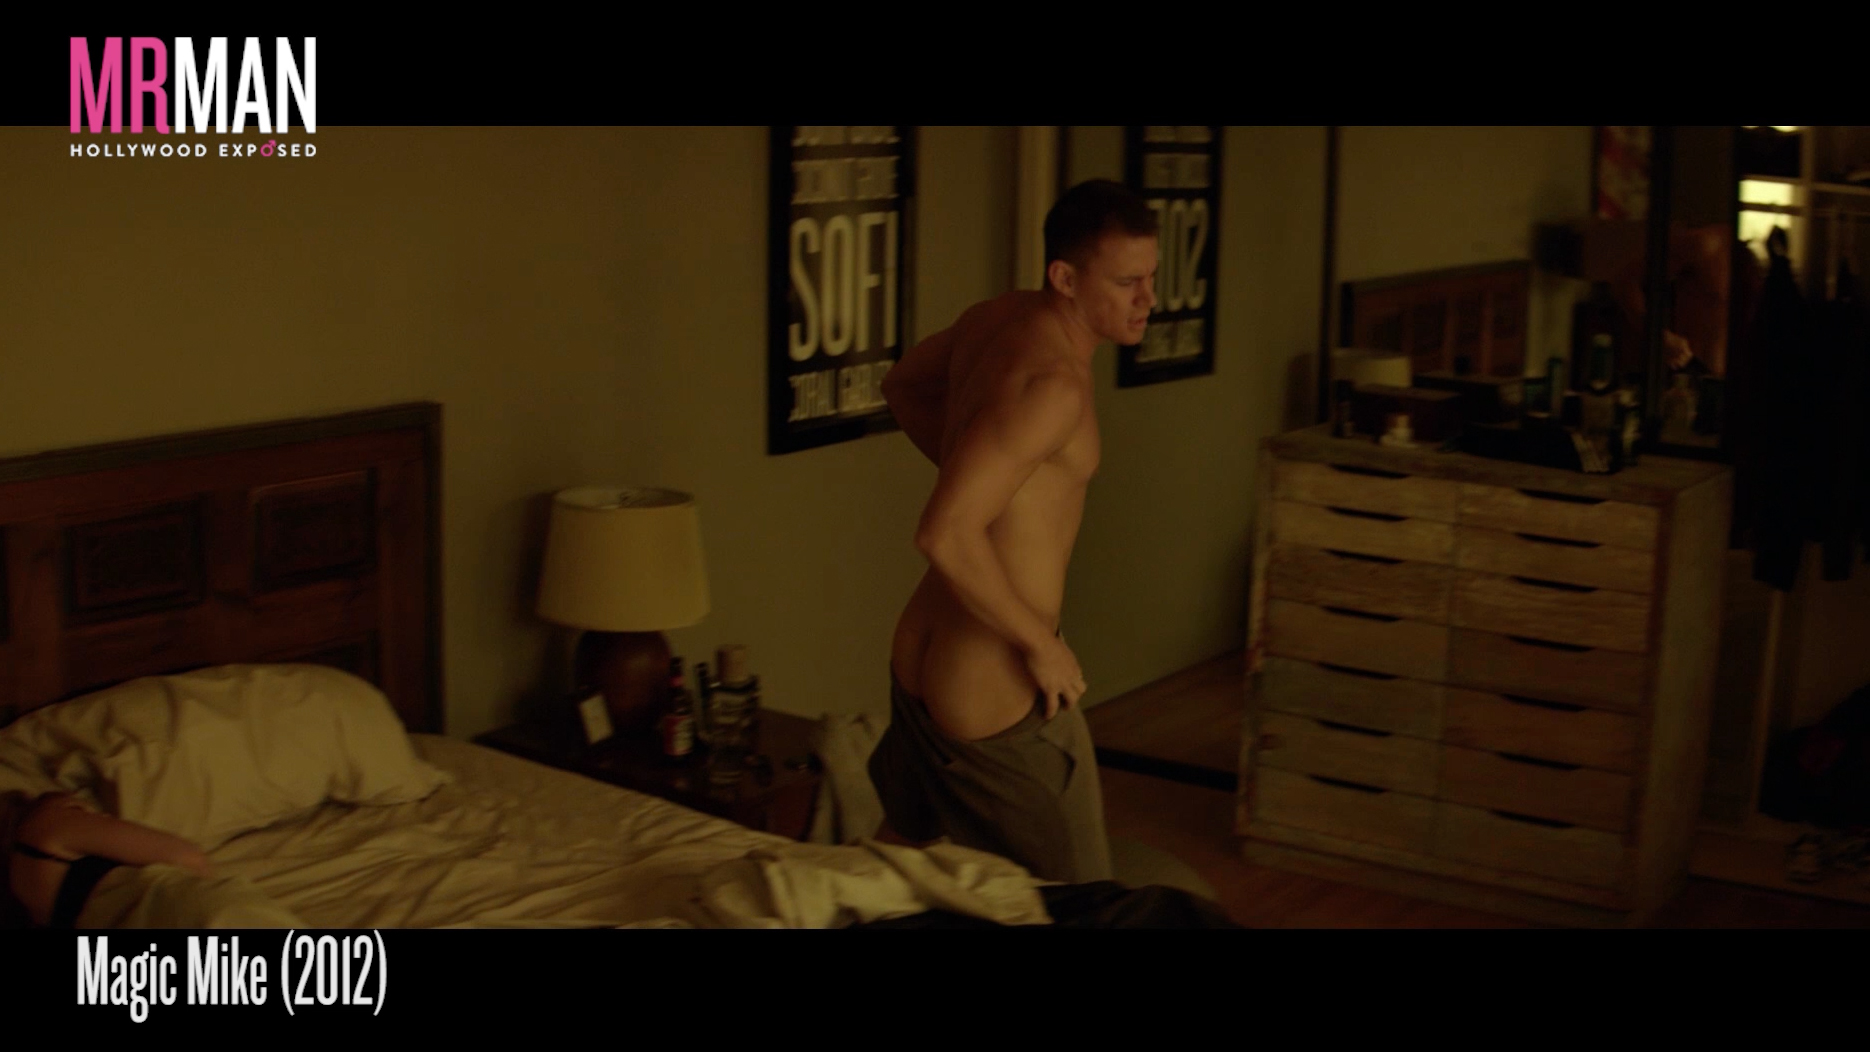 See Channing Tatum's Butt and More in Magic Mike!